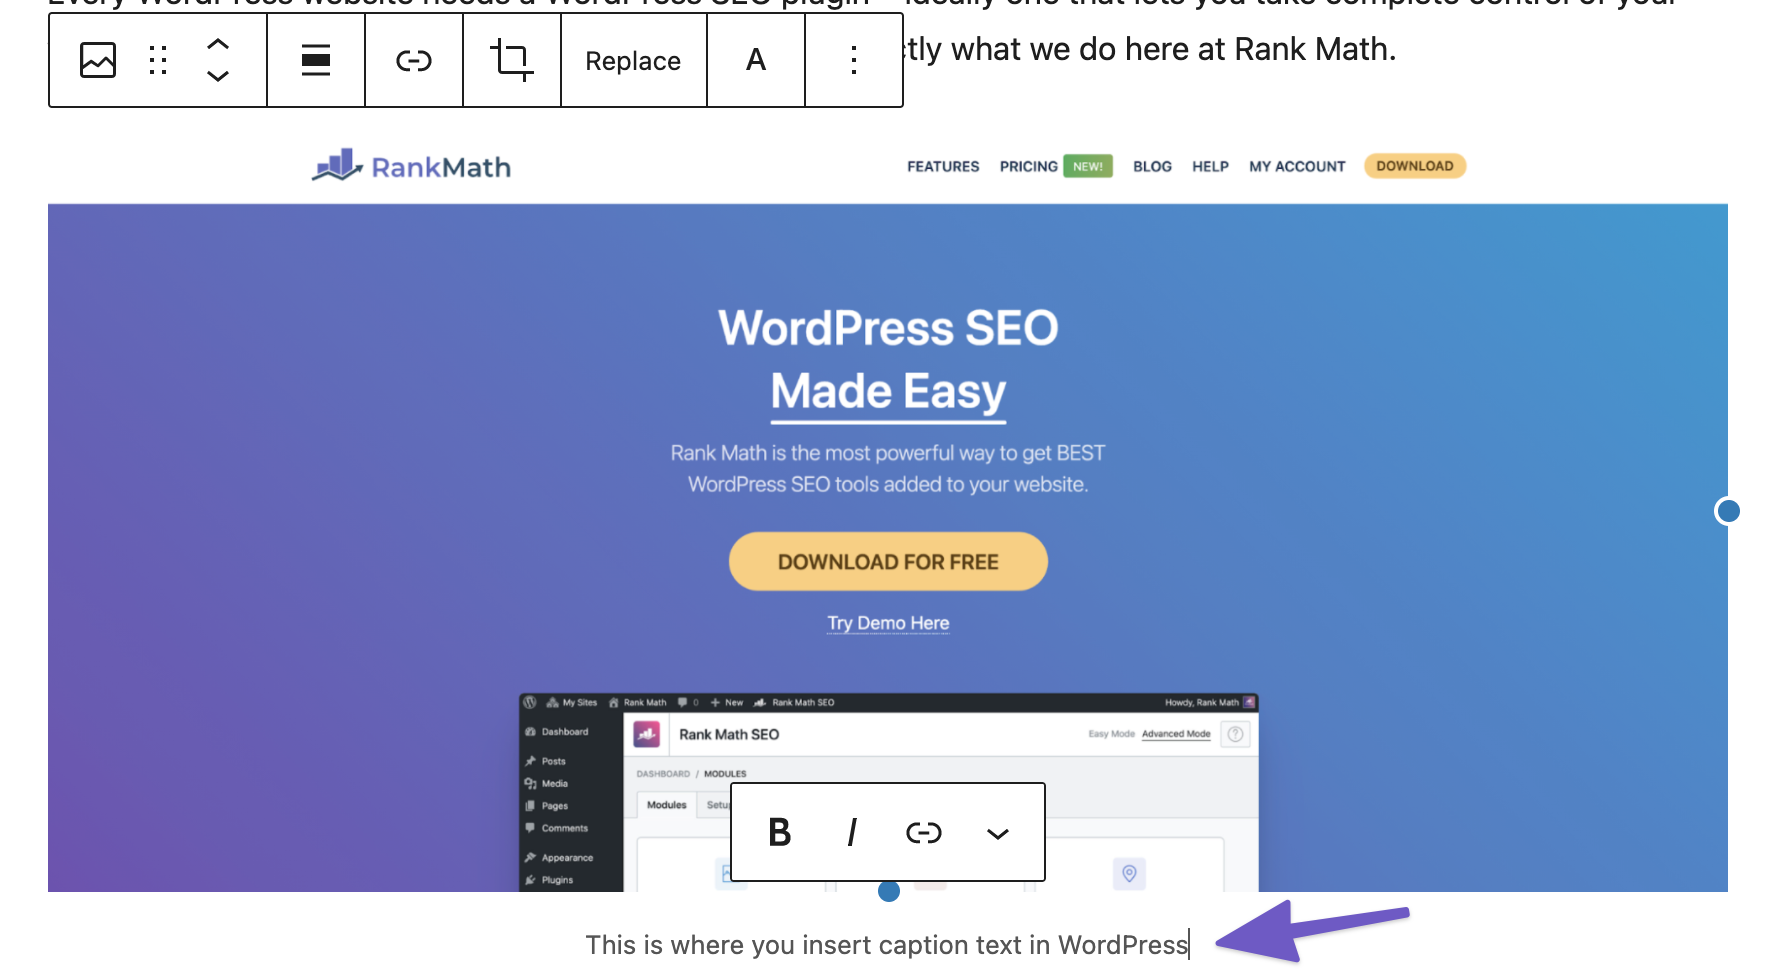 How To Add Image Captions in WordPress